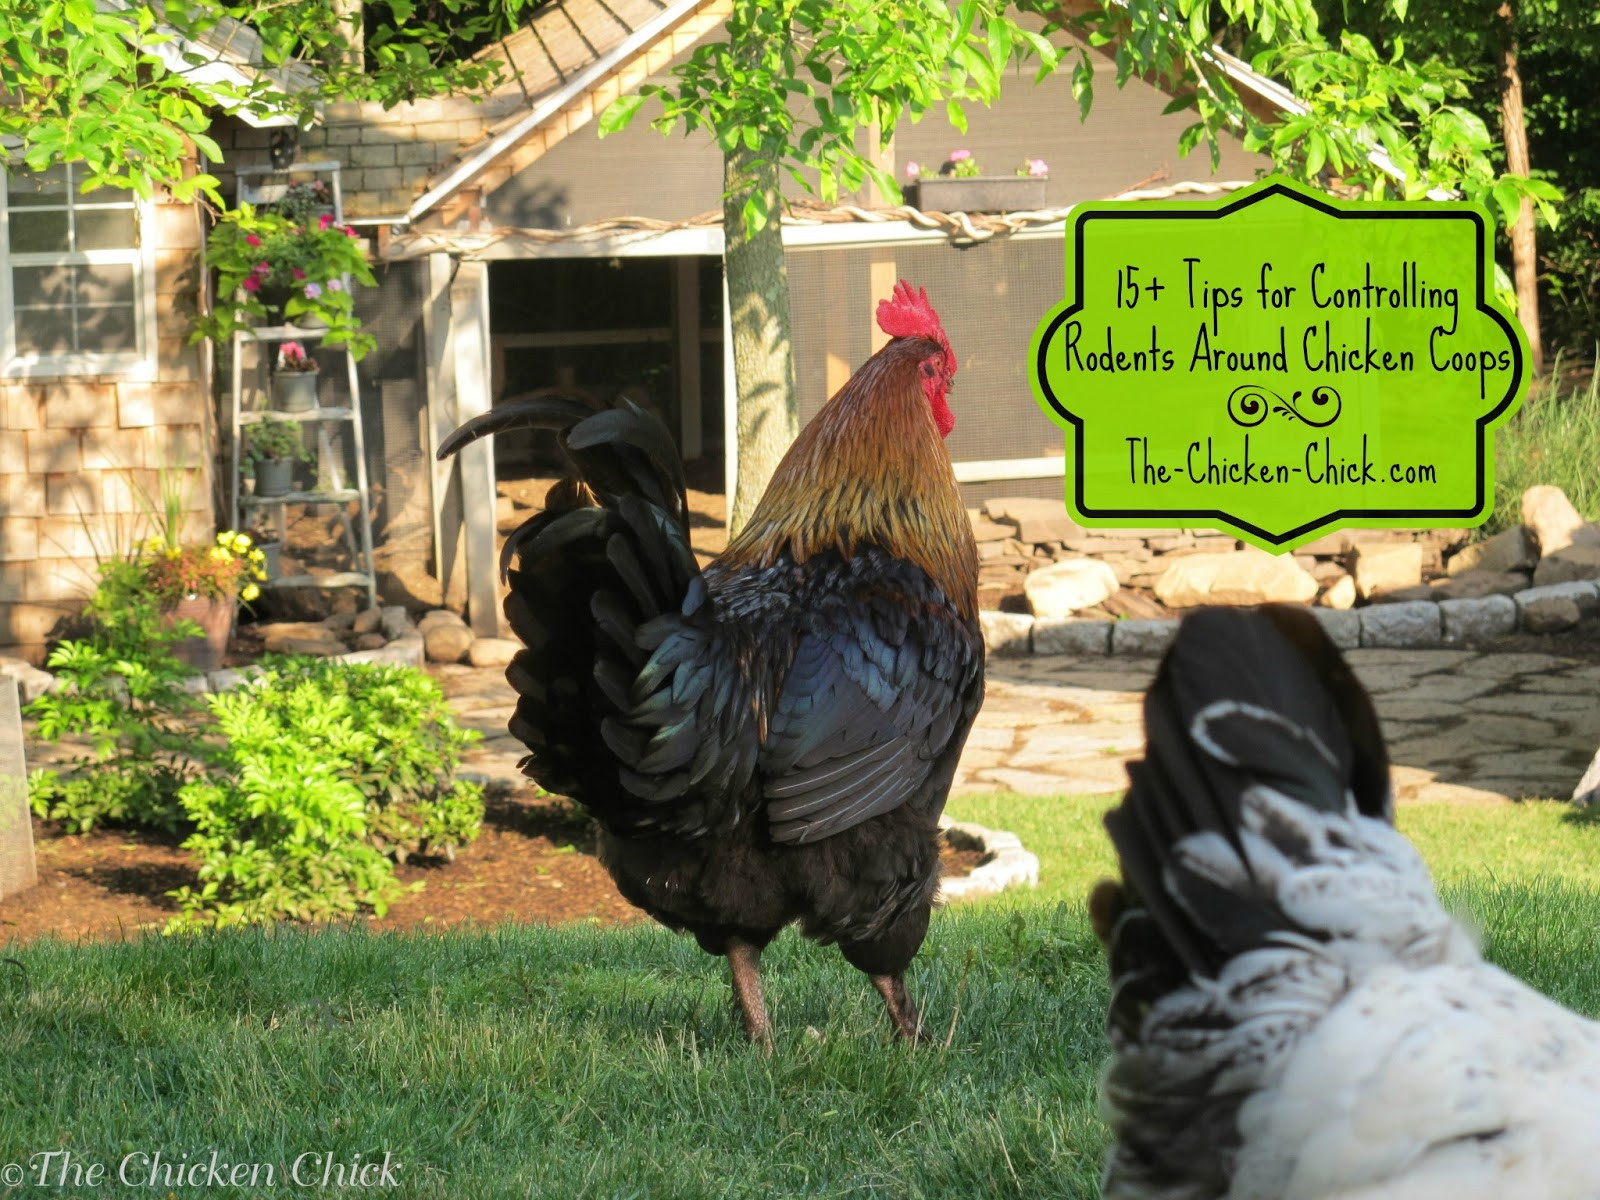 Rats In Backyard  15 Tips to Control Rodents Around Chicken Coops